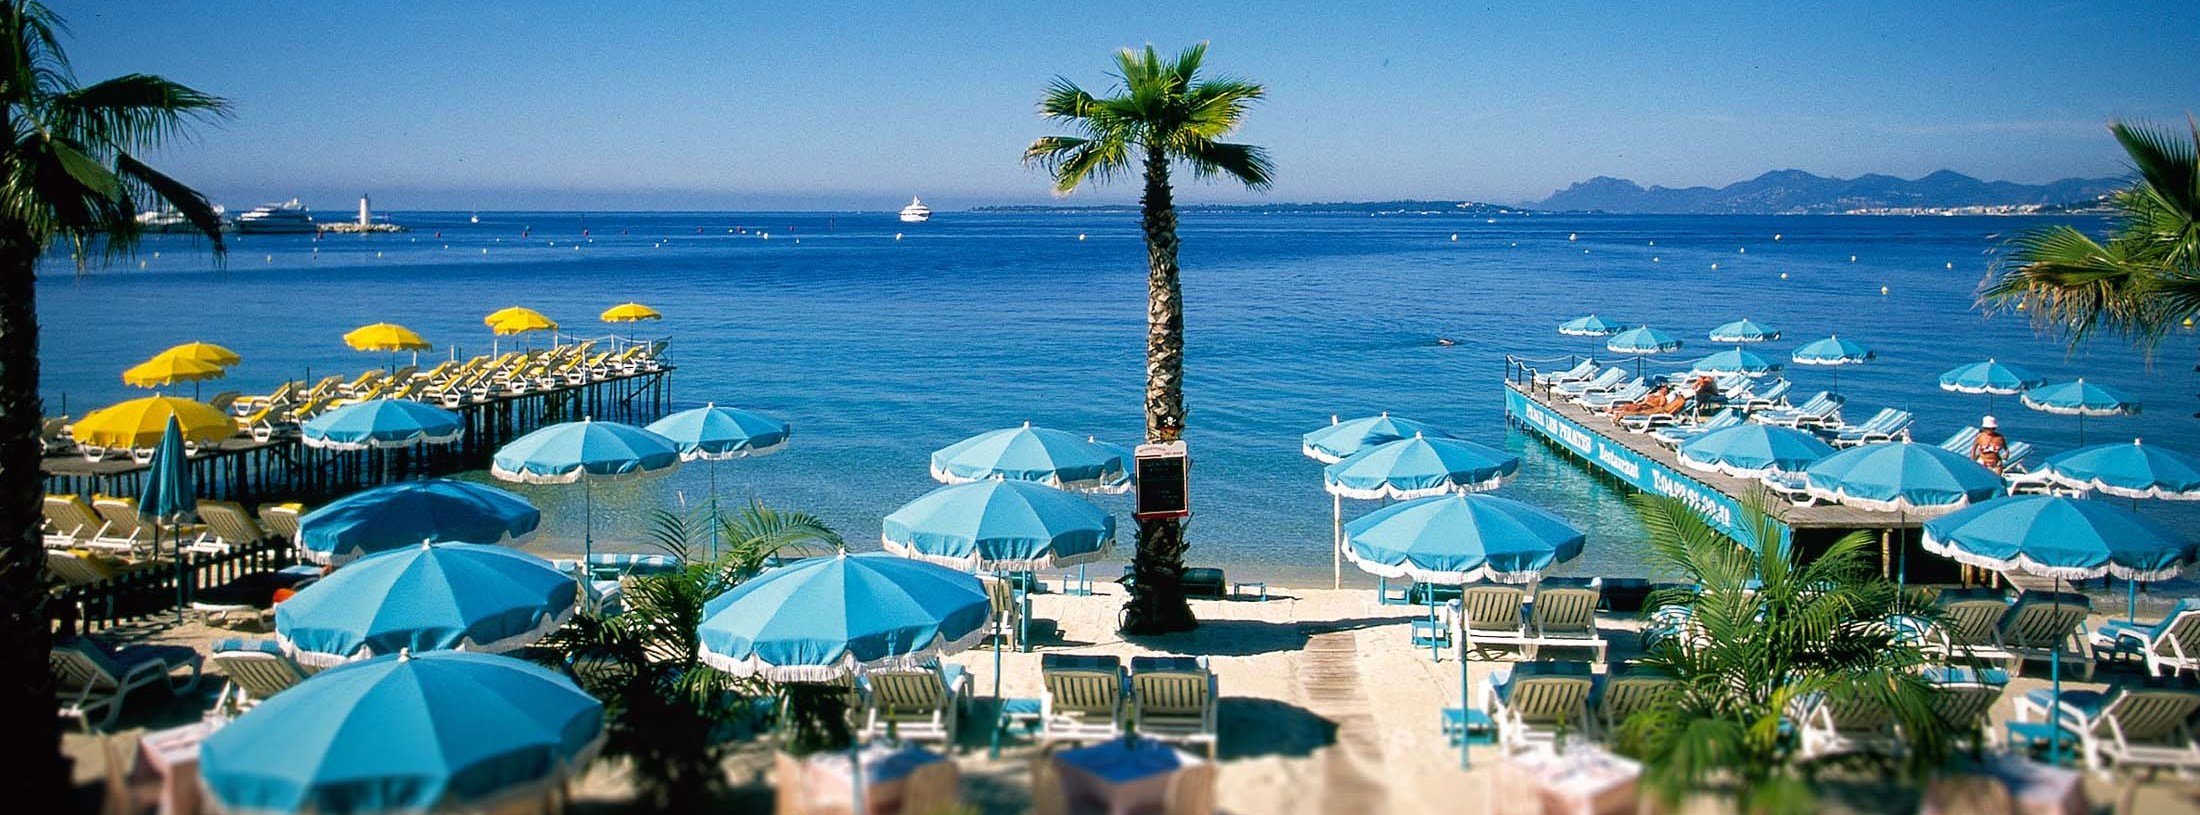 Antibes Juan Les Pins 103 Nice Hotels In Antibes Juan Les Pins In France That Sembo Recommend